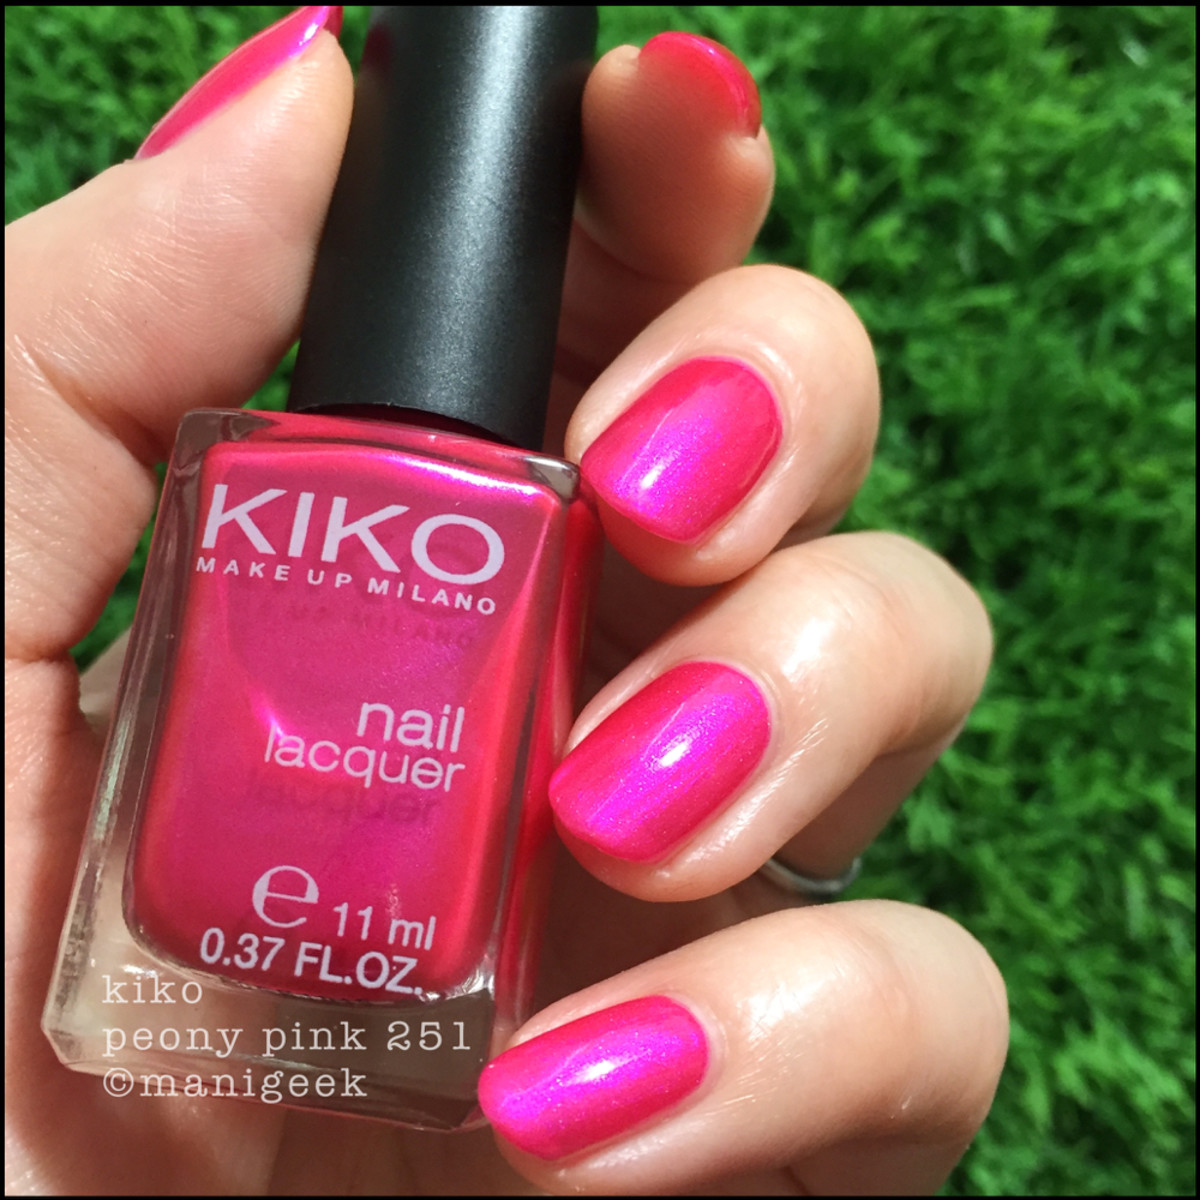 Kiko 251 Peony Pink Nail Polish _ Manigeek 1000 Days of Untrieds Week 3